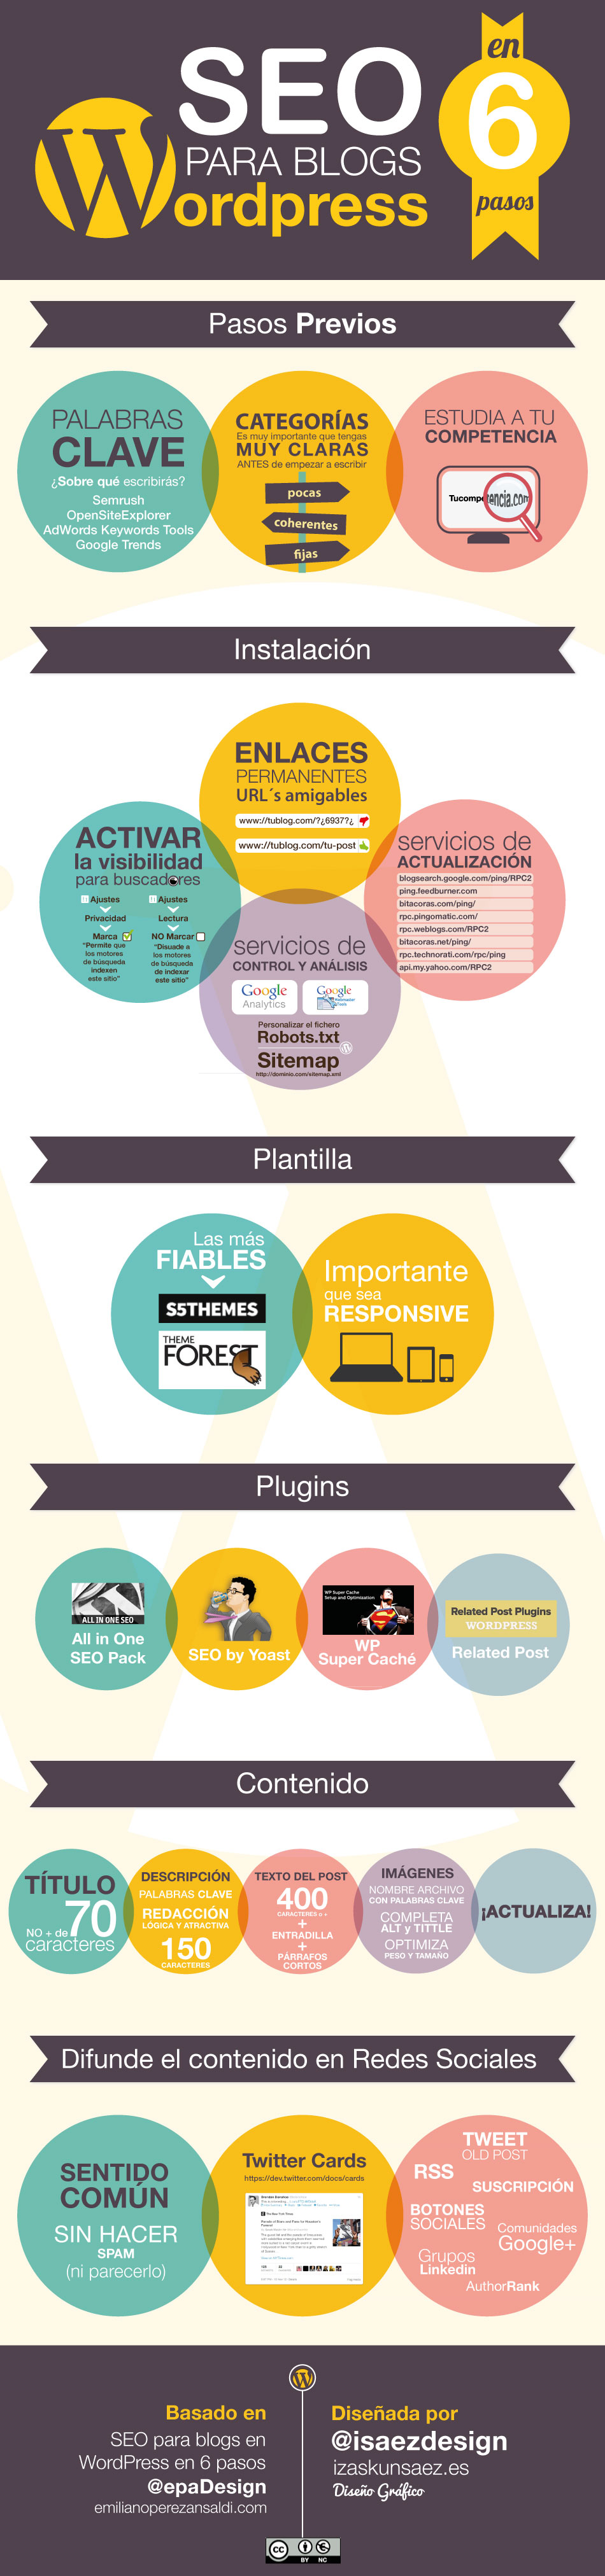 infografia_seo_blogs_wp3